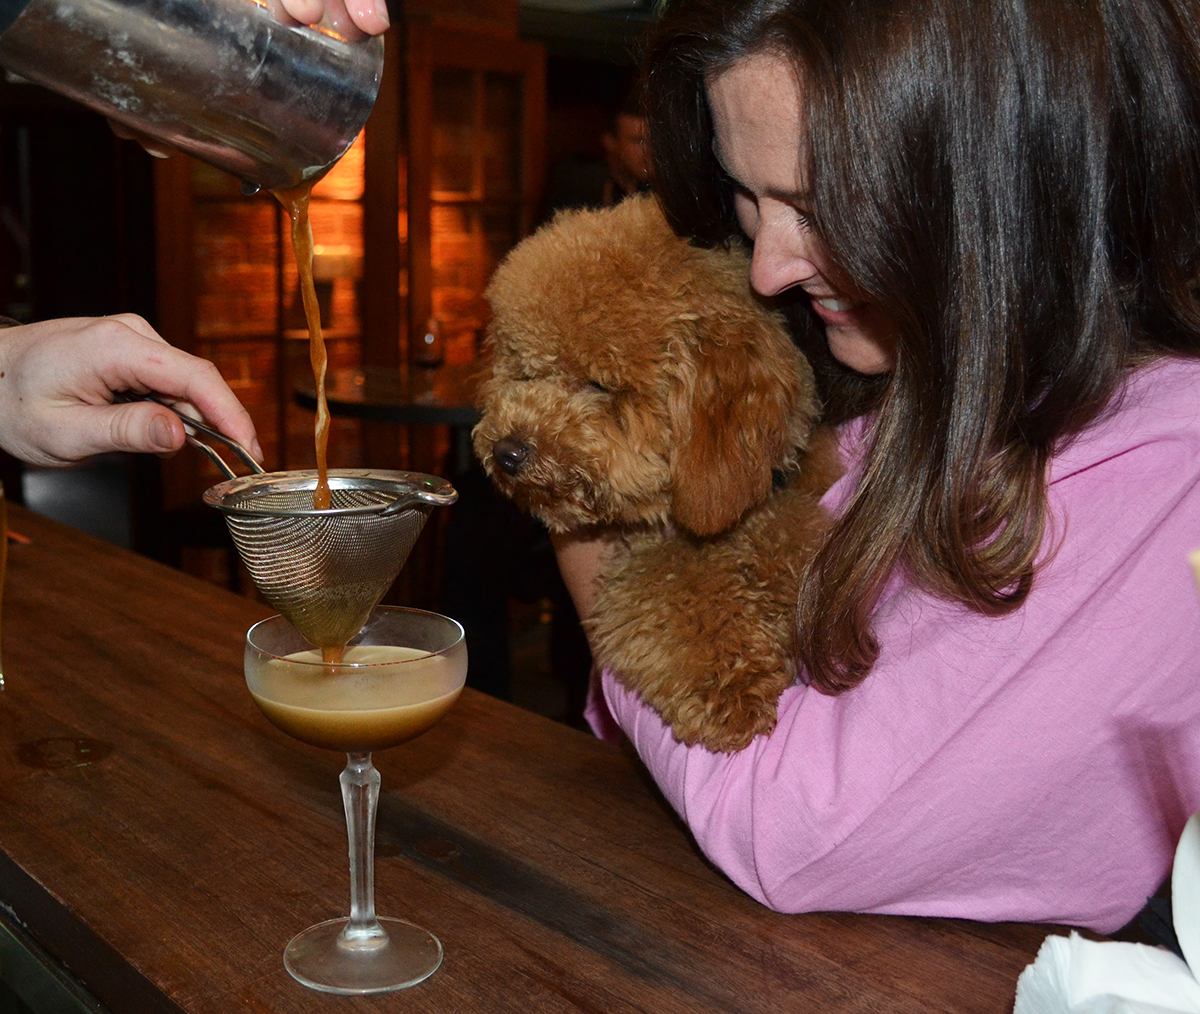 Oodle dog in his mum's arms watches barman pouring an Espresso Martini into a glass